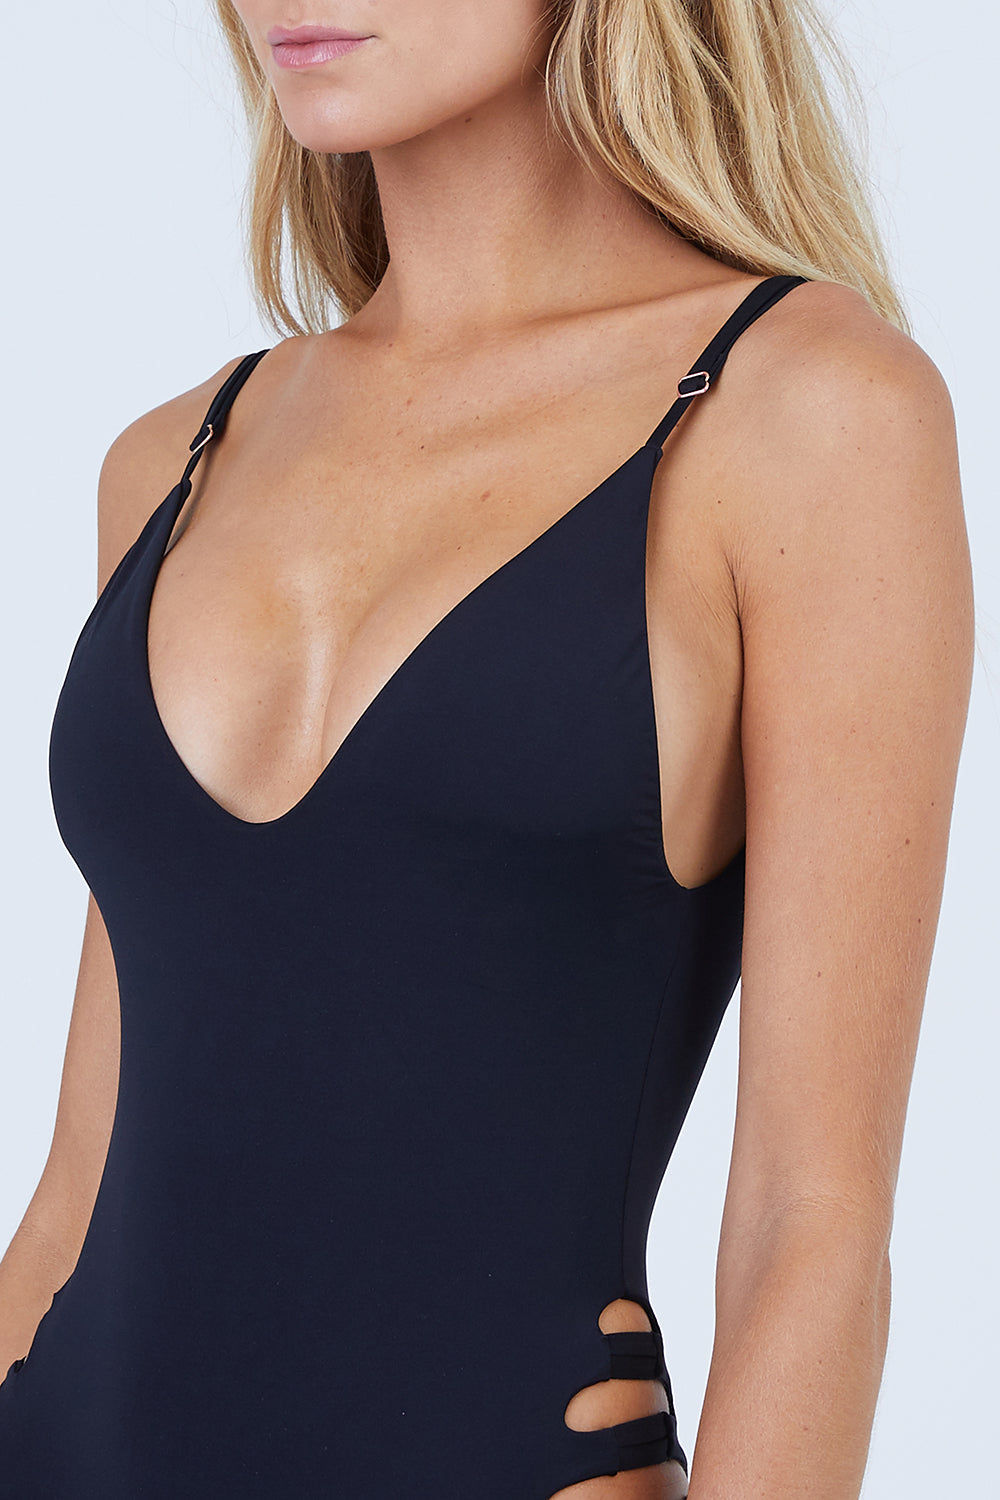 MALAI Sun Crater Side Cut Outs One Piece Swimsuit - Black One Piece | Black| Malai Sun Crater Side Cut Outs One Piece Swimsuit - Black. Features:   Deep V Neckline  Adjustable Shoulder Straps Side Cut Outs  Low Scoop Back  Cheeky-Moderate Coverage Front View